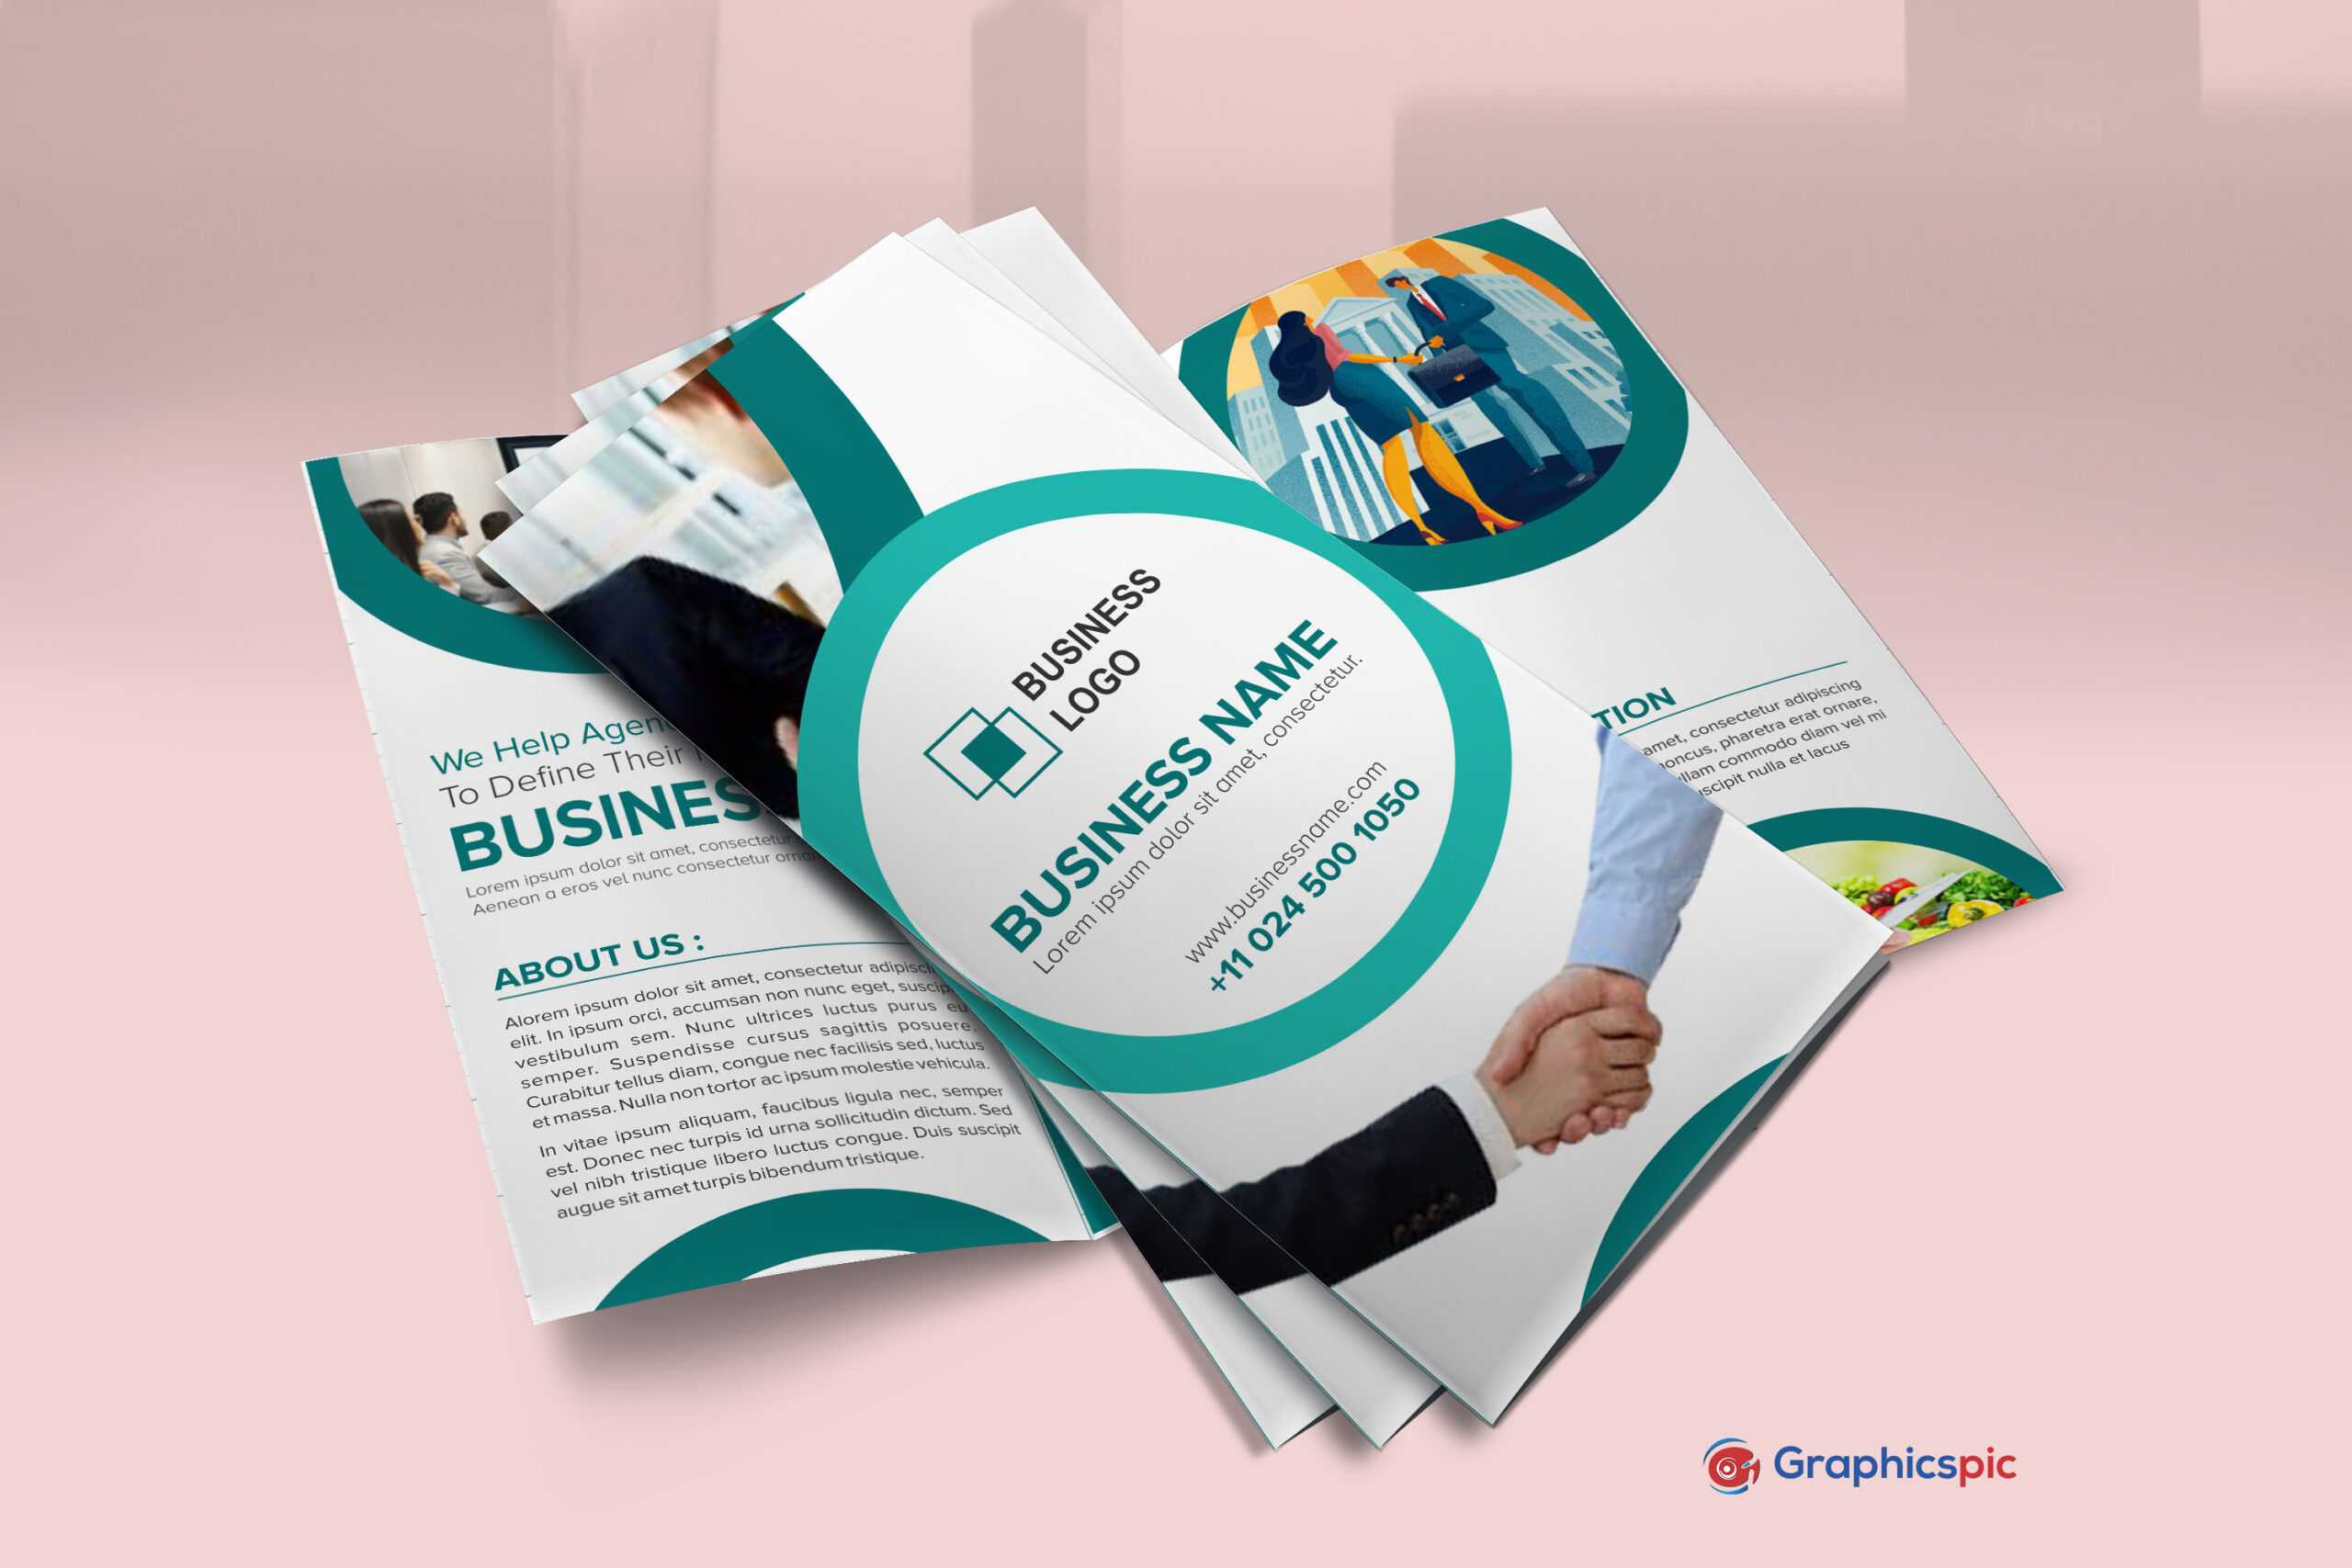 Free Download Brochure Templates Design For Events, Products Pertaining To Product Brochure Template Free